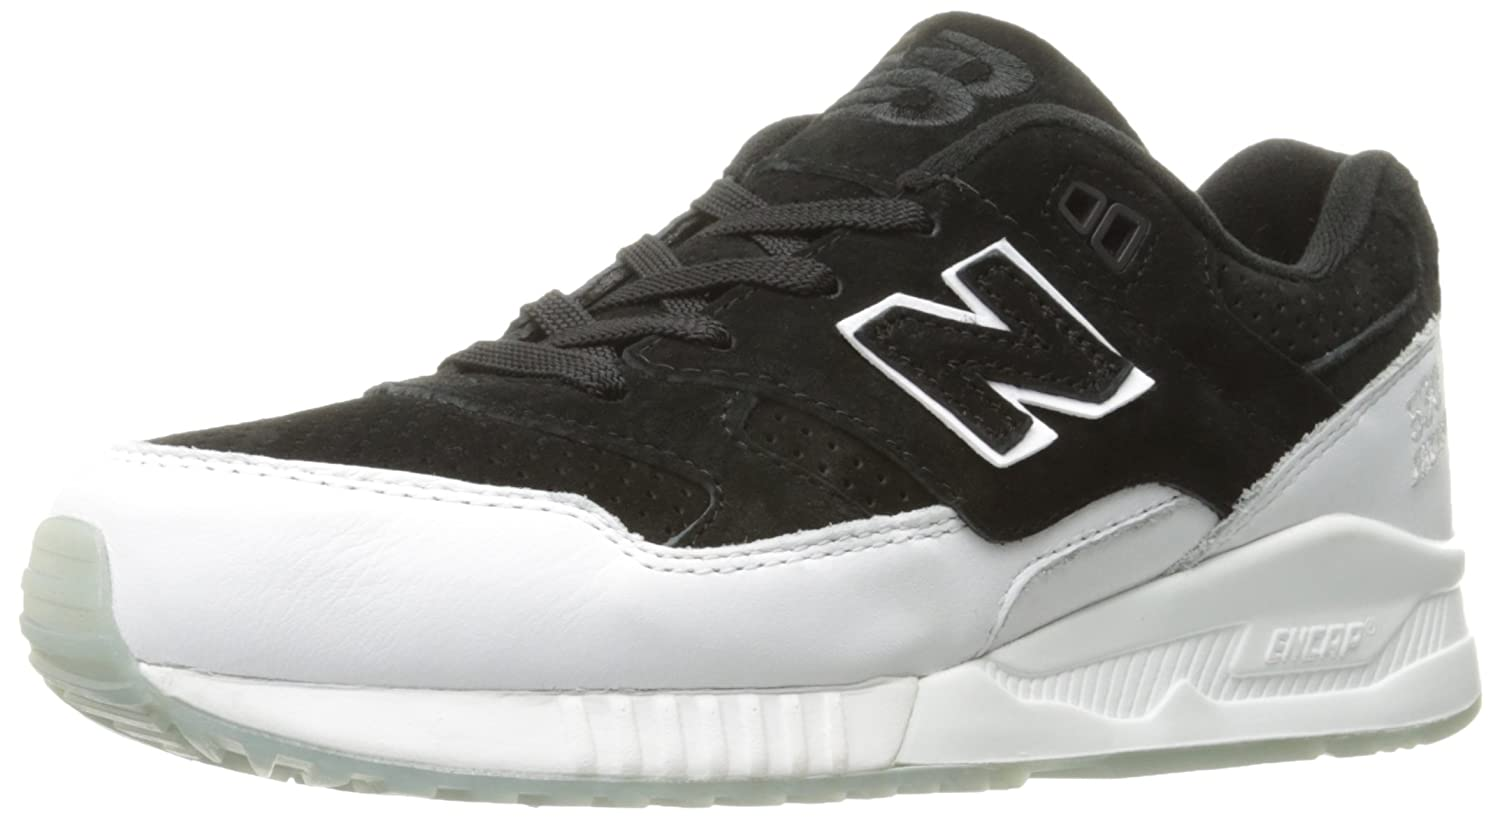 official photos 249e6 1f1d6 New Balance Men's 530 Summer Waves Collection Lifestyle Sneaker